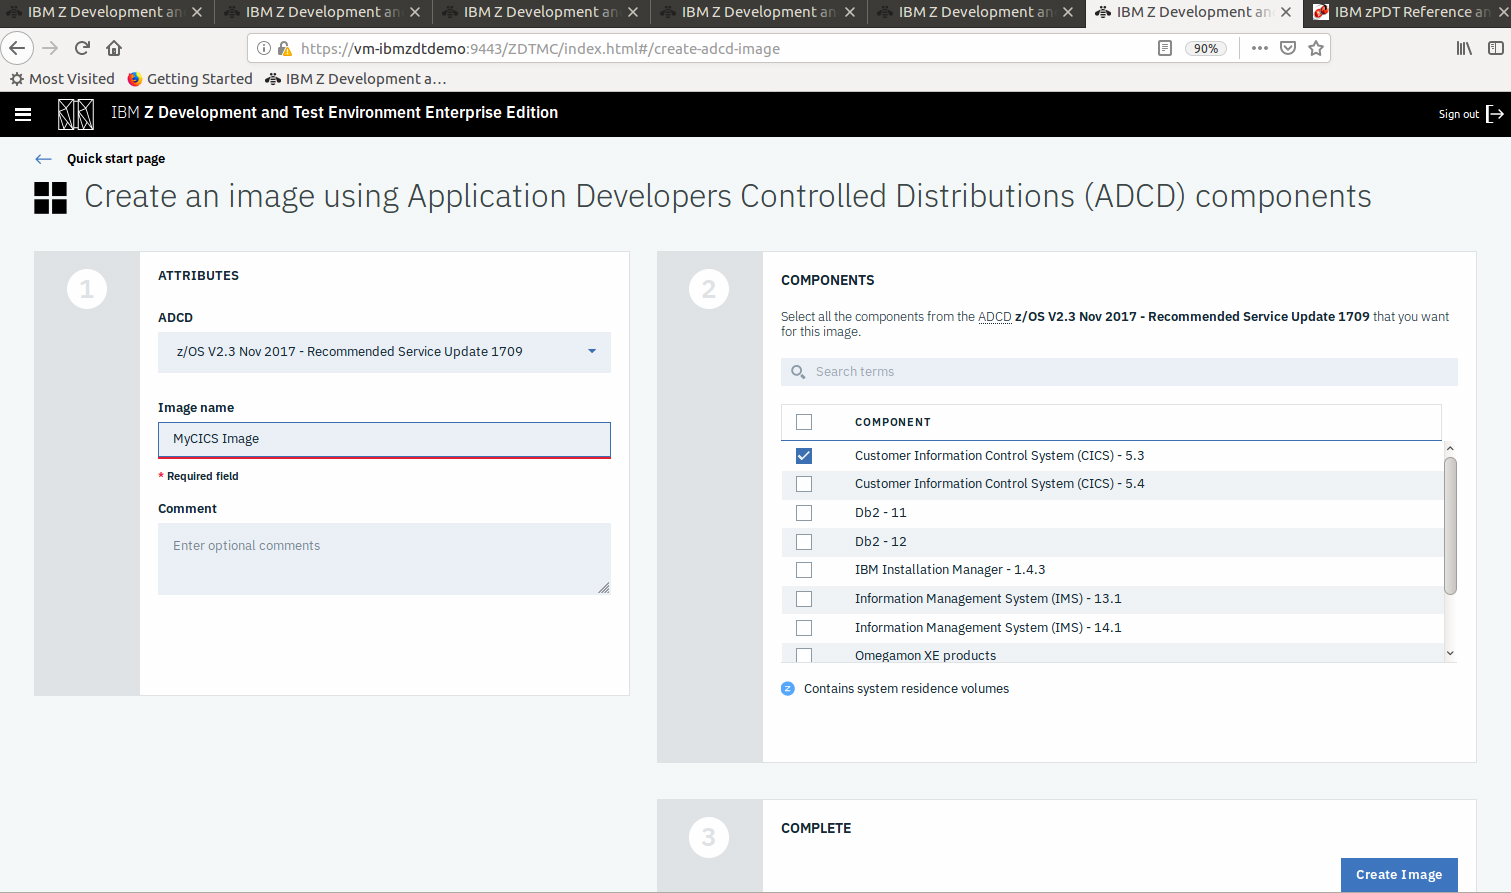 Set up an Application Developers Controlled Distribution